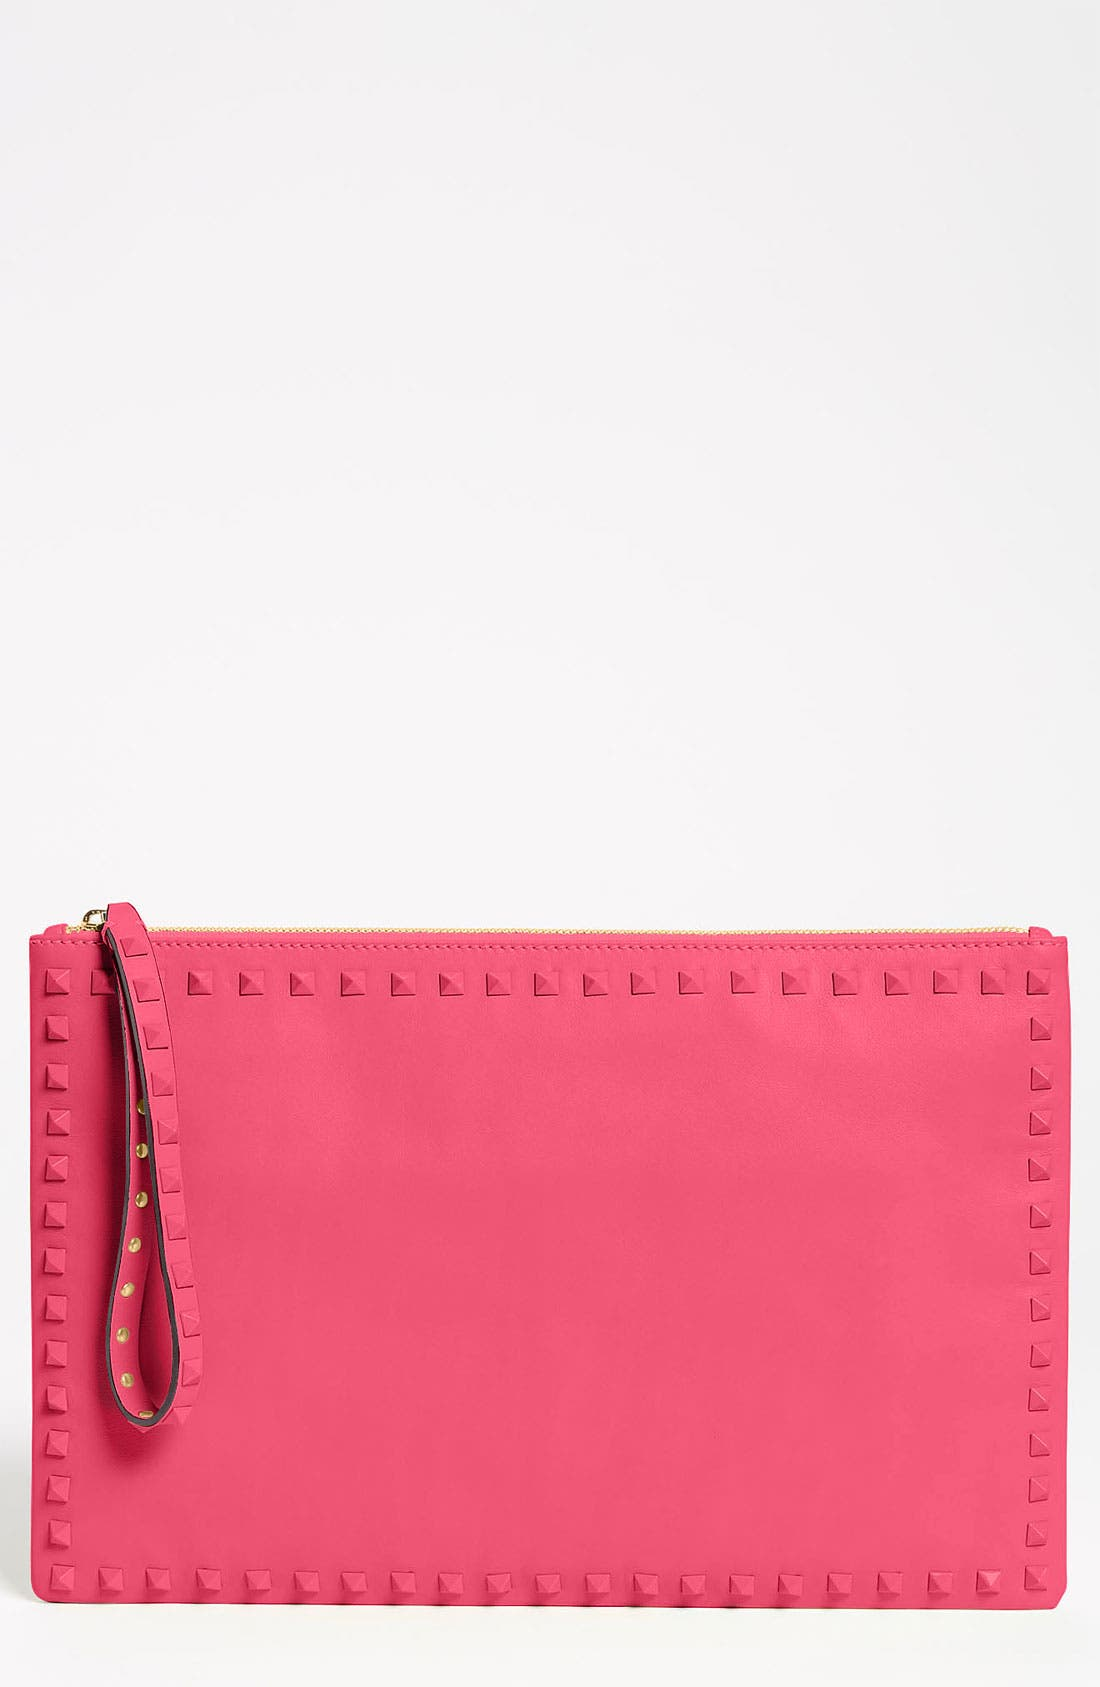 Alternate Image 1 Selected - Valentino 'Rockstud - Small' Leather Clutch